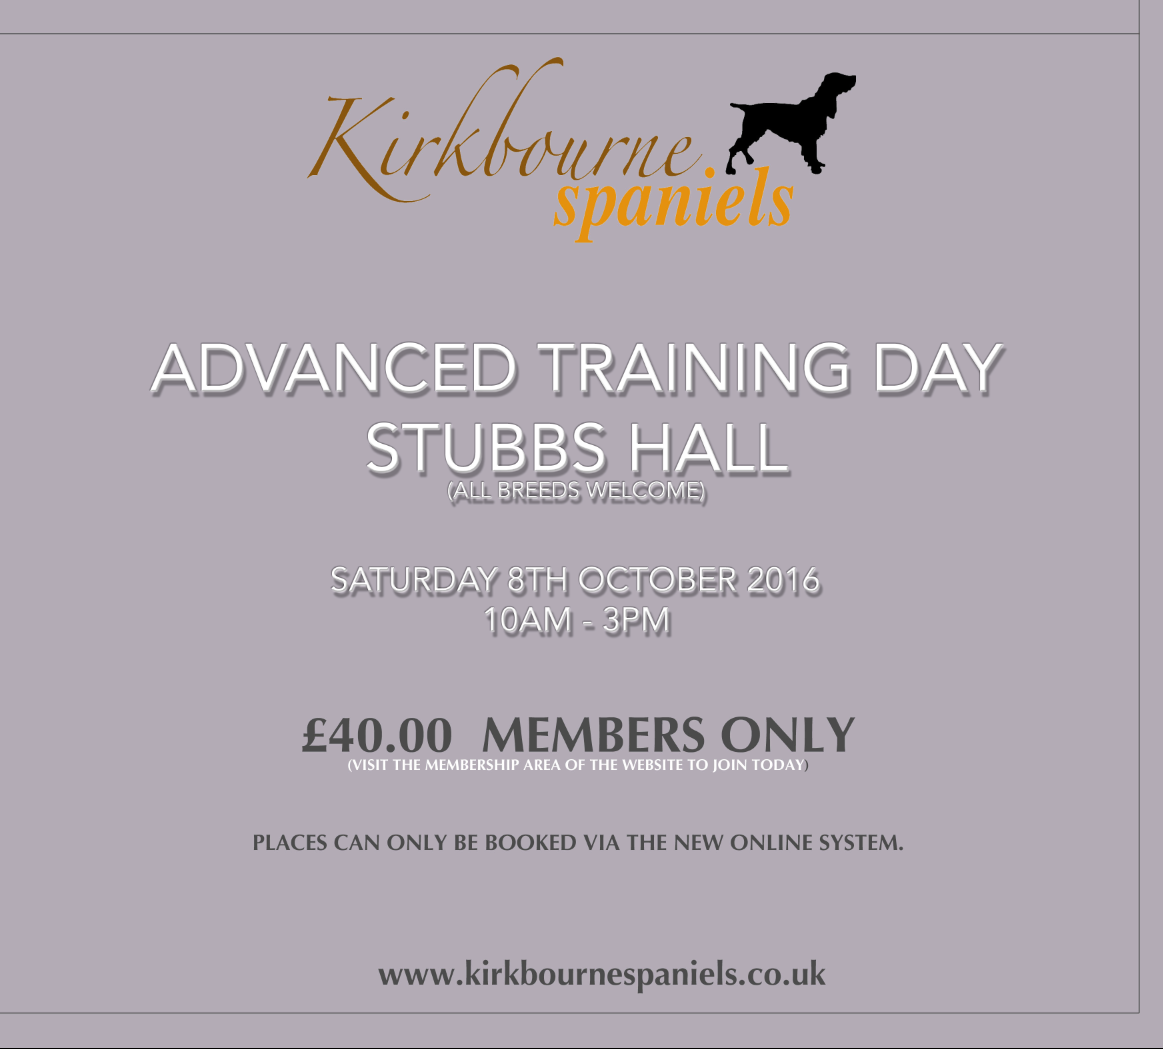 8TH OCTOBER 2016 - ADVANCED TRAINING DAY